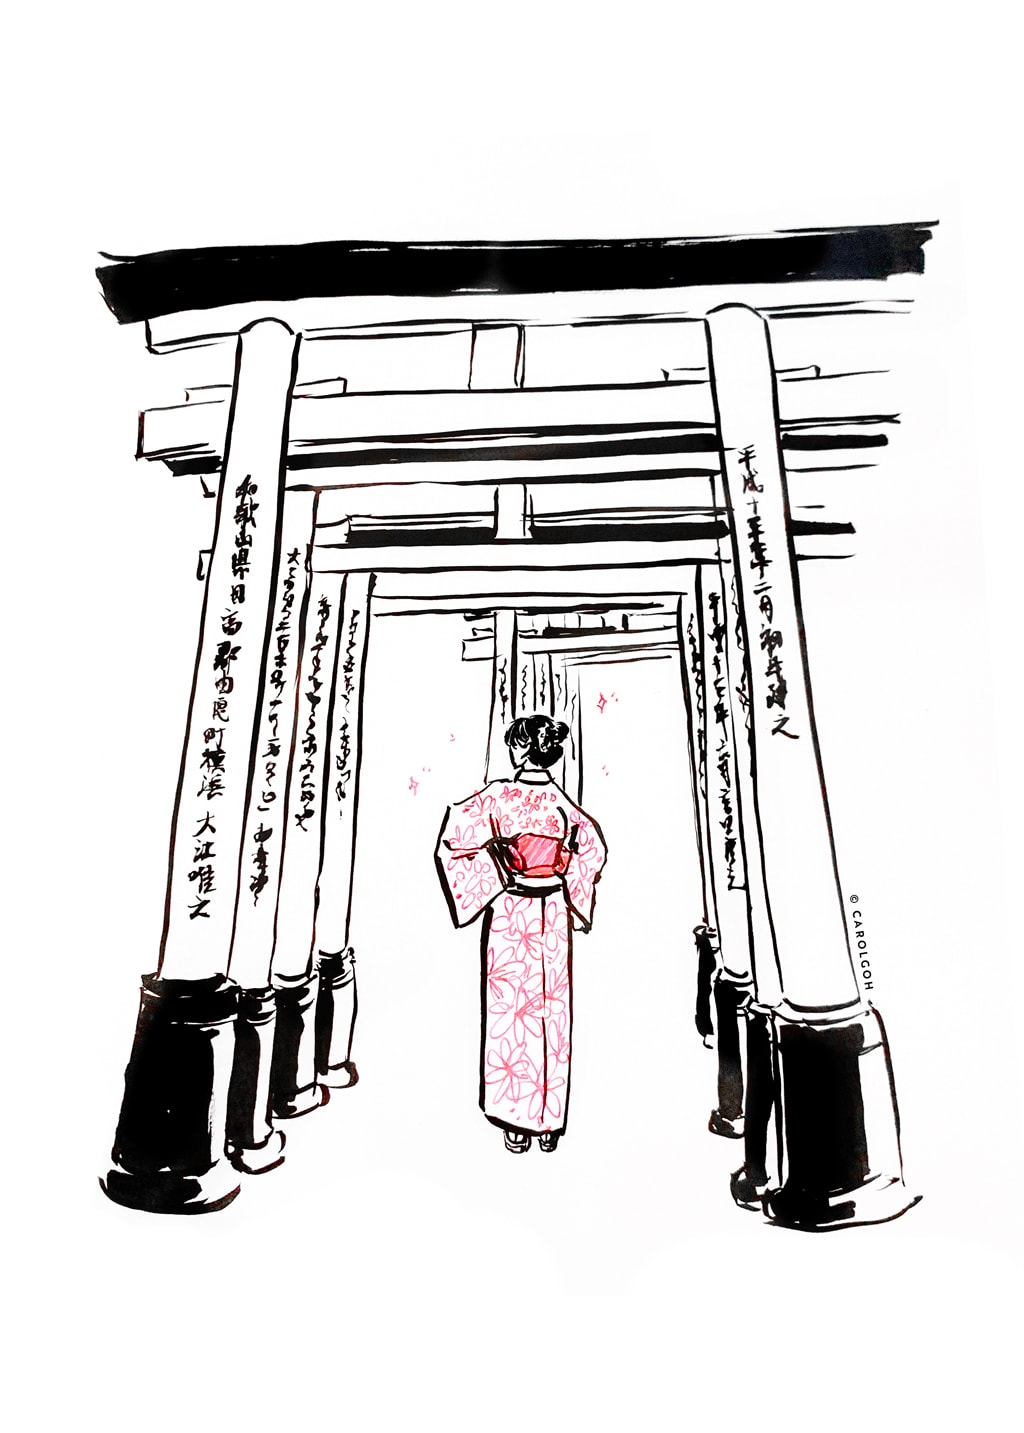 Carol Goh : Black Ink Fushimi Inari Illustration